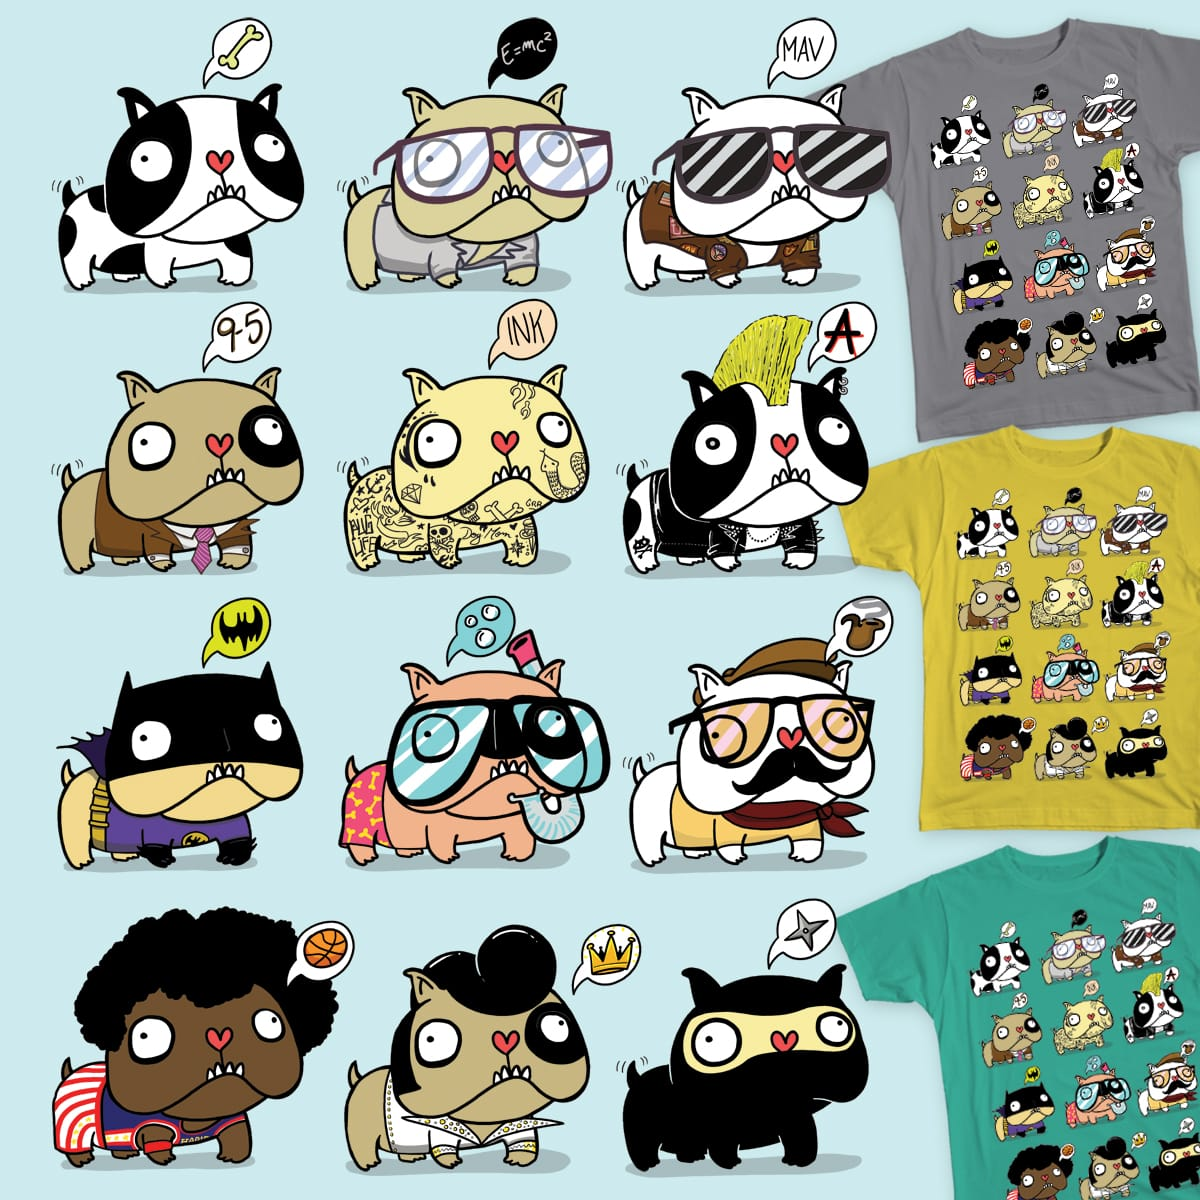 MULTIDOGS by Surfender on Threadless